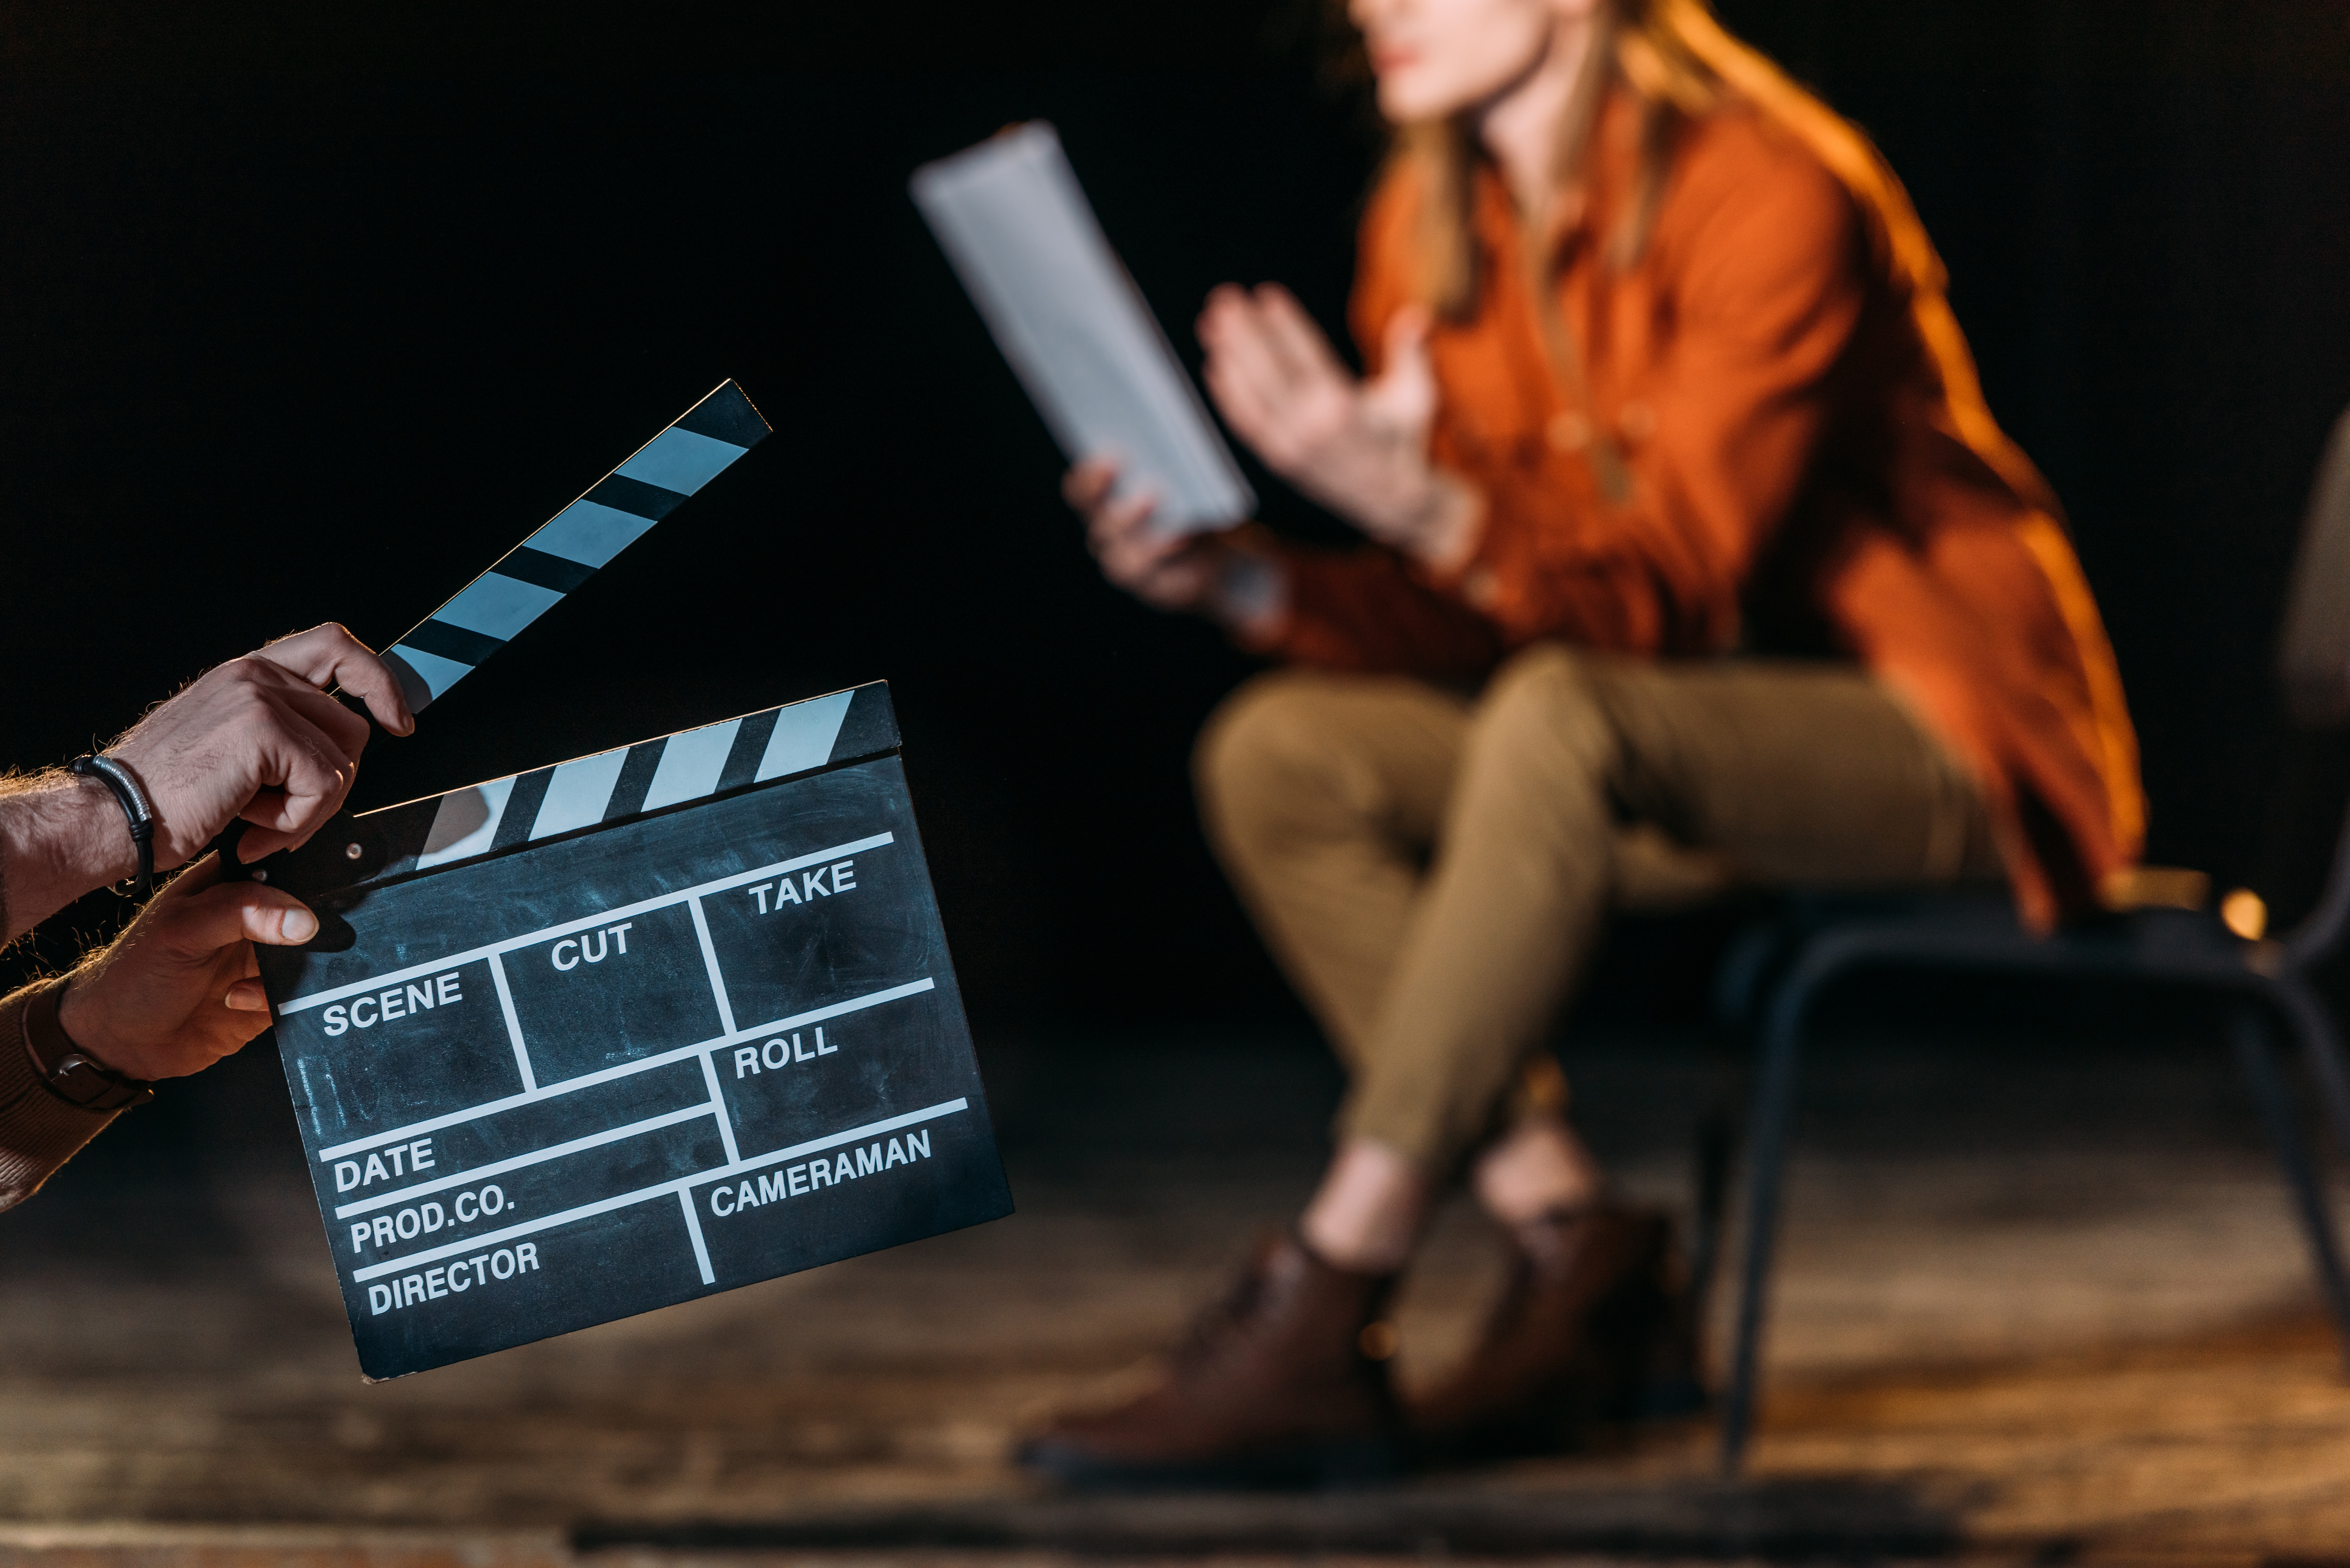 How To Slate in an Audition